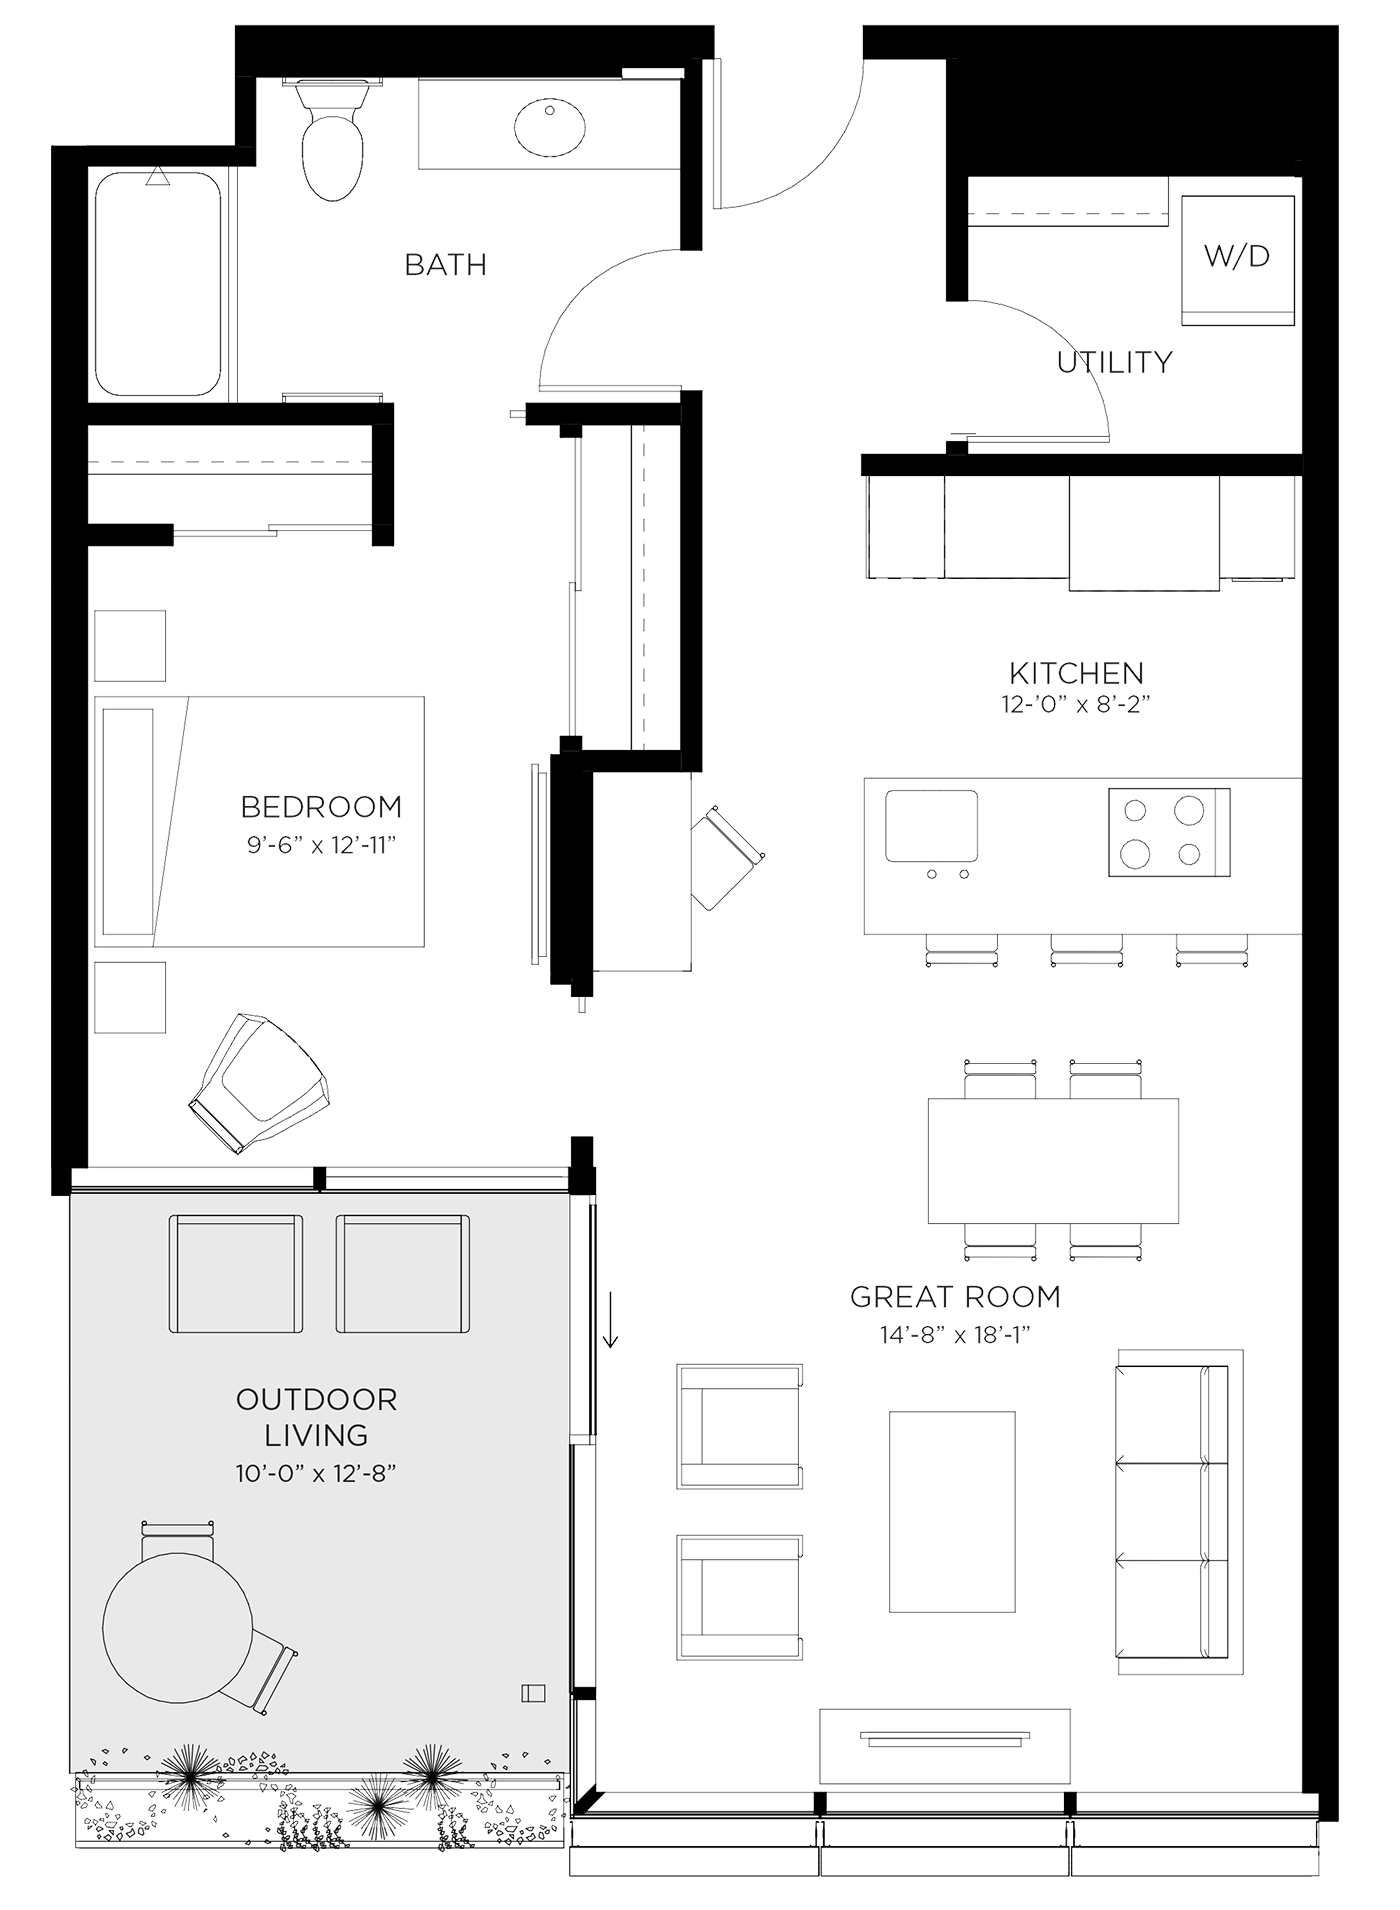 Unit 01G Floor Plan